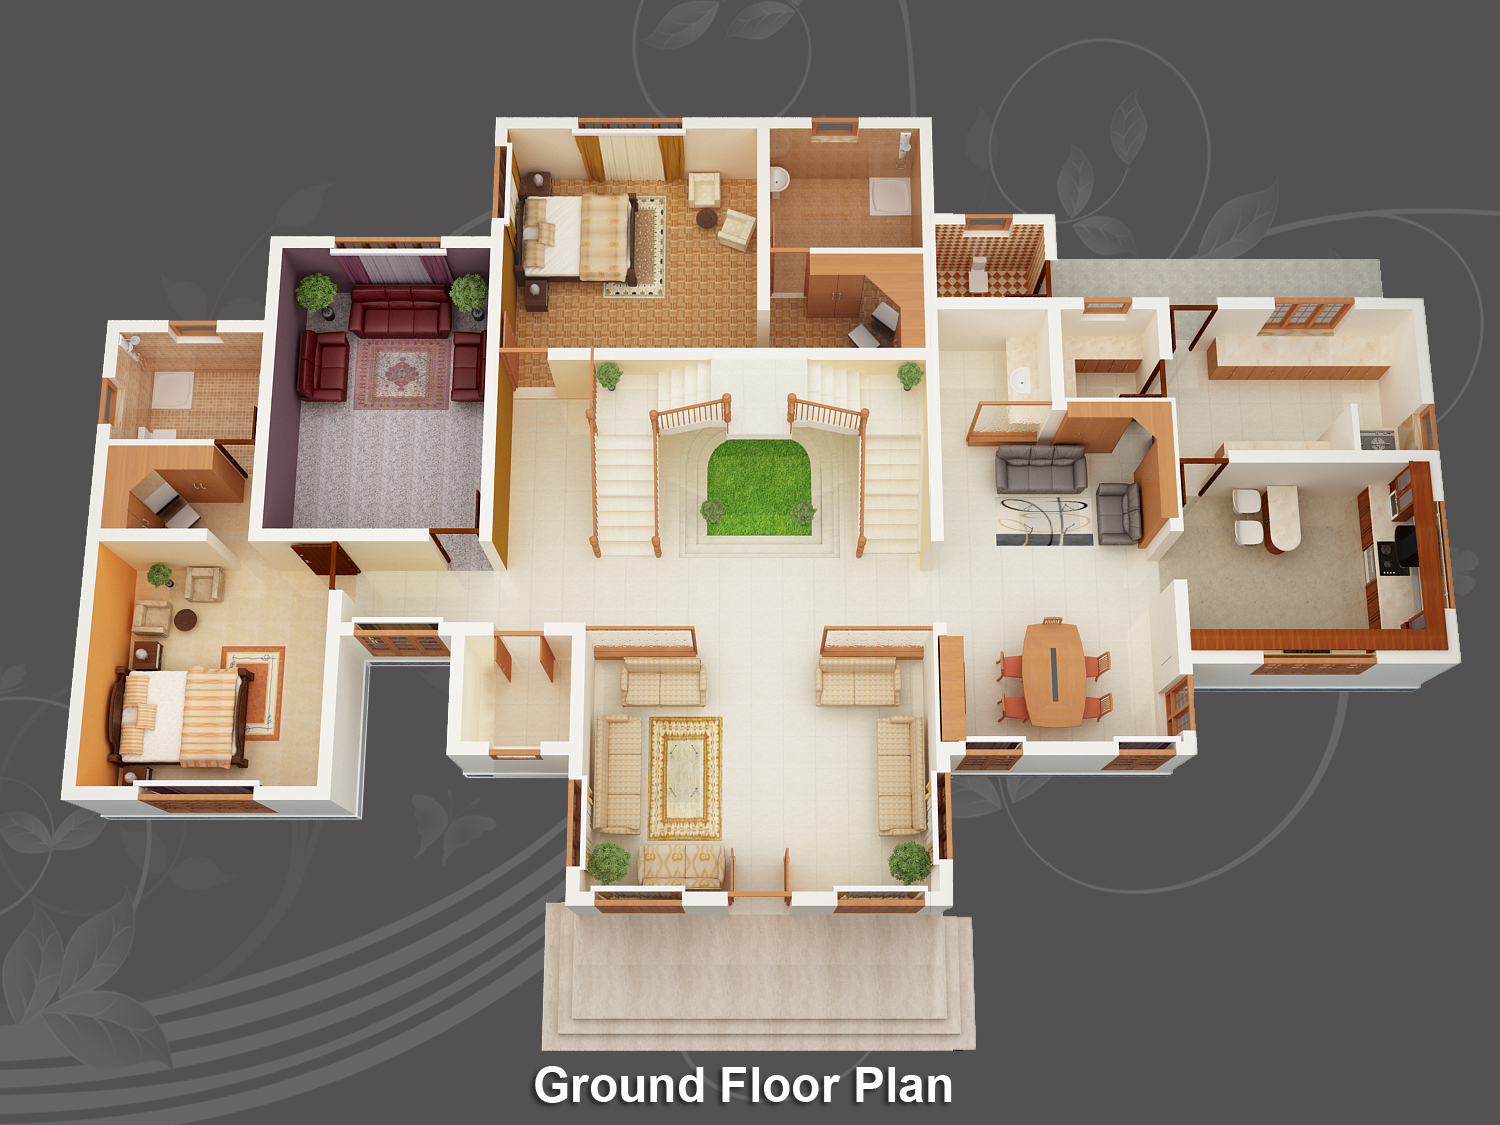 Evens construction pvt ltd 3d house plan 20 05 2011 House plan 3d view